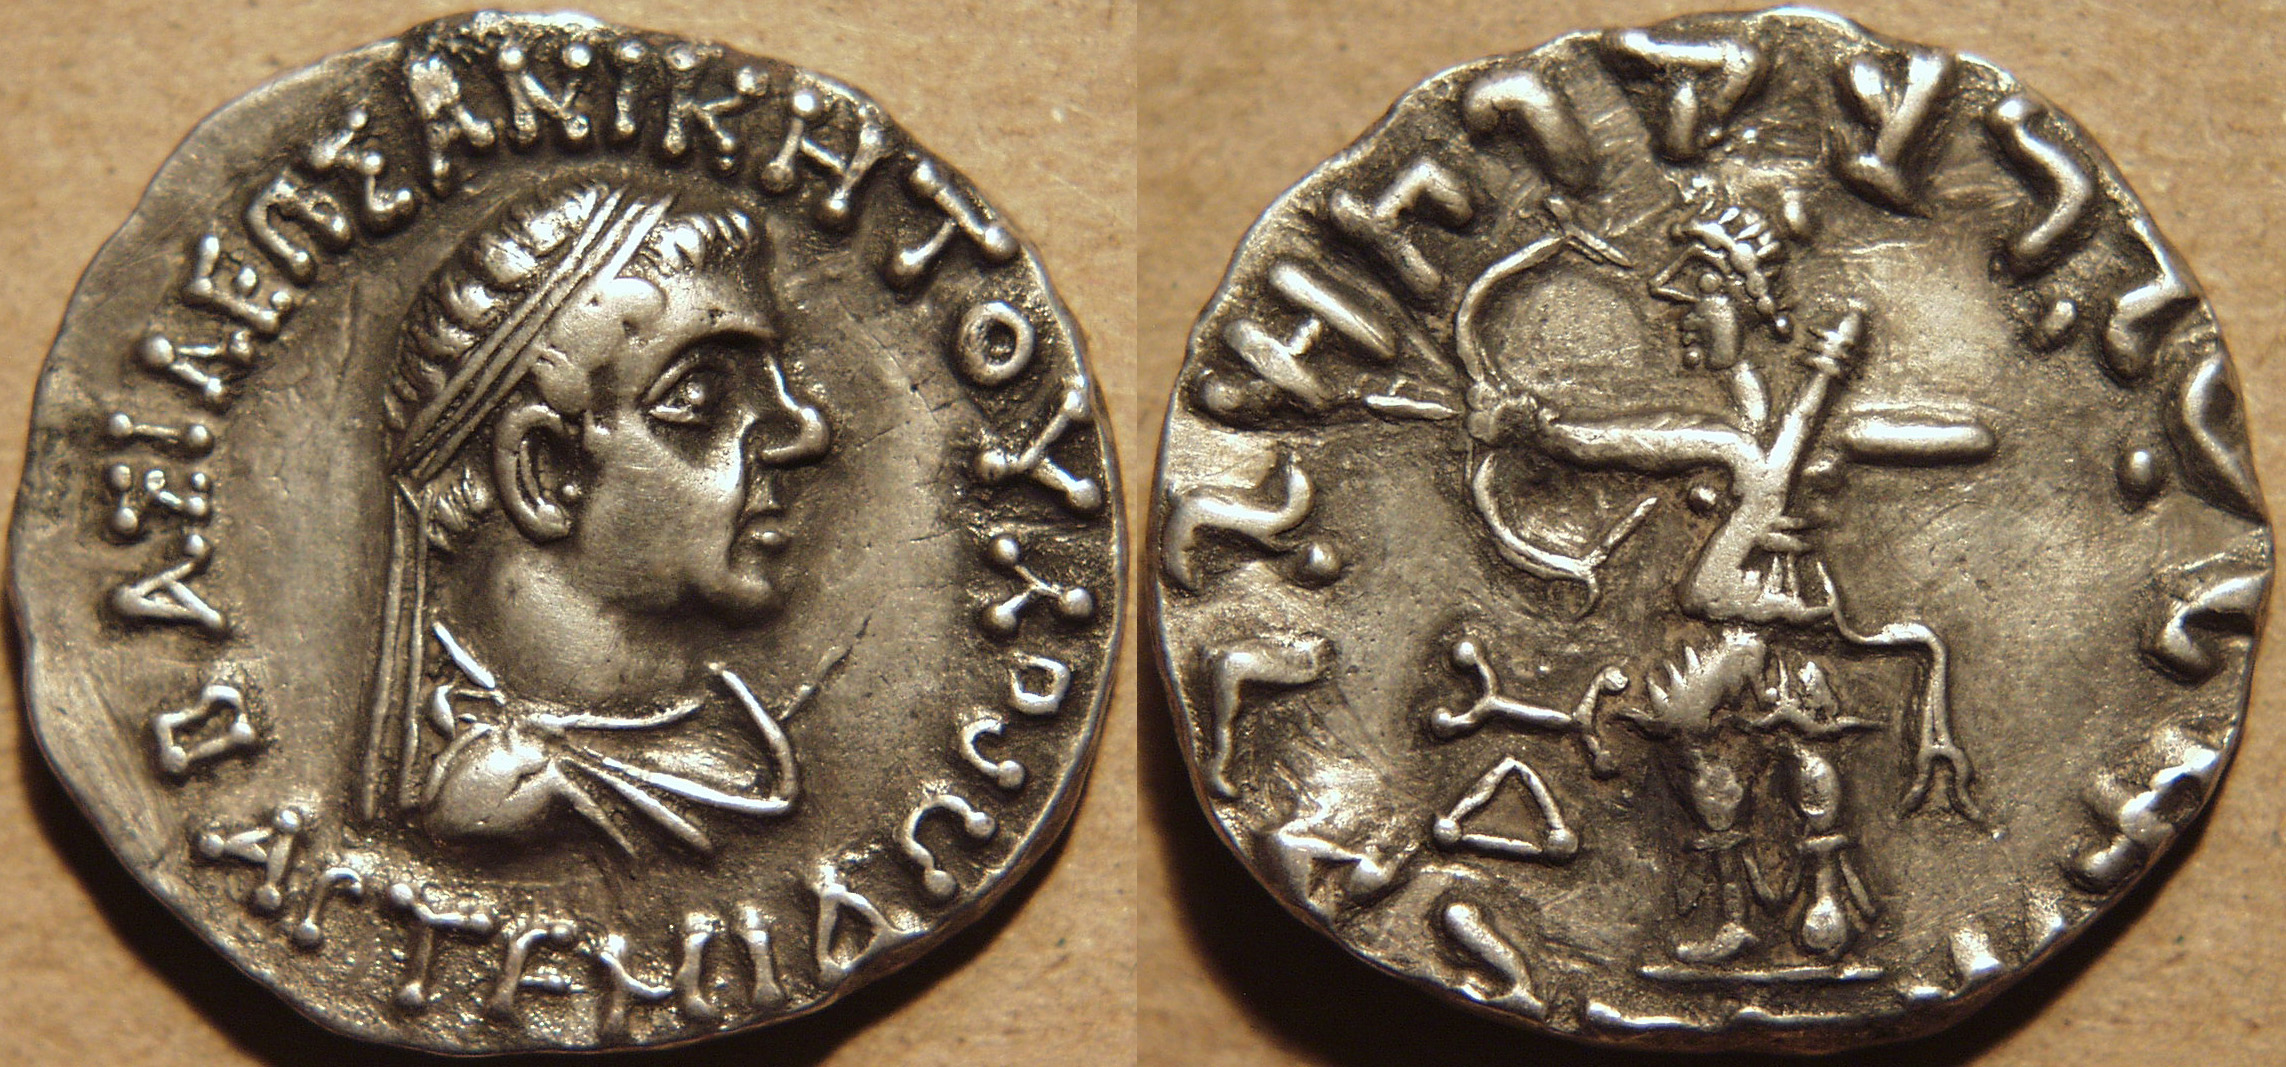 Artemis wikipedia silver tetradrachm of the indo greek king artemidoros whose name means gift of artemis c 85 bc featuring artemis with a drawn bow and a quiver on her biocorpaavc Choice Image